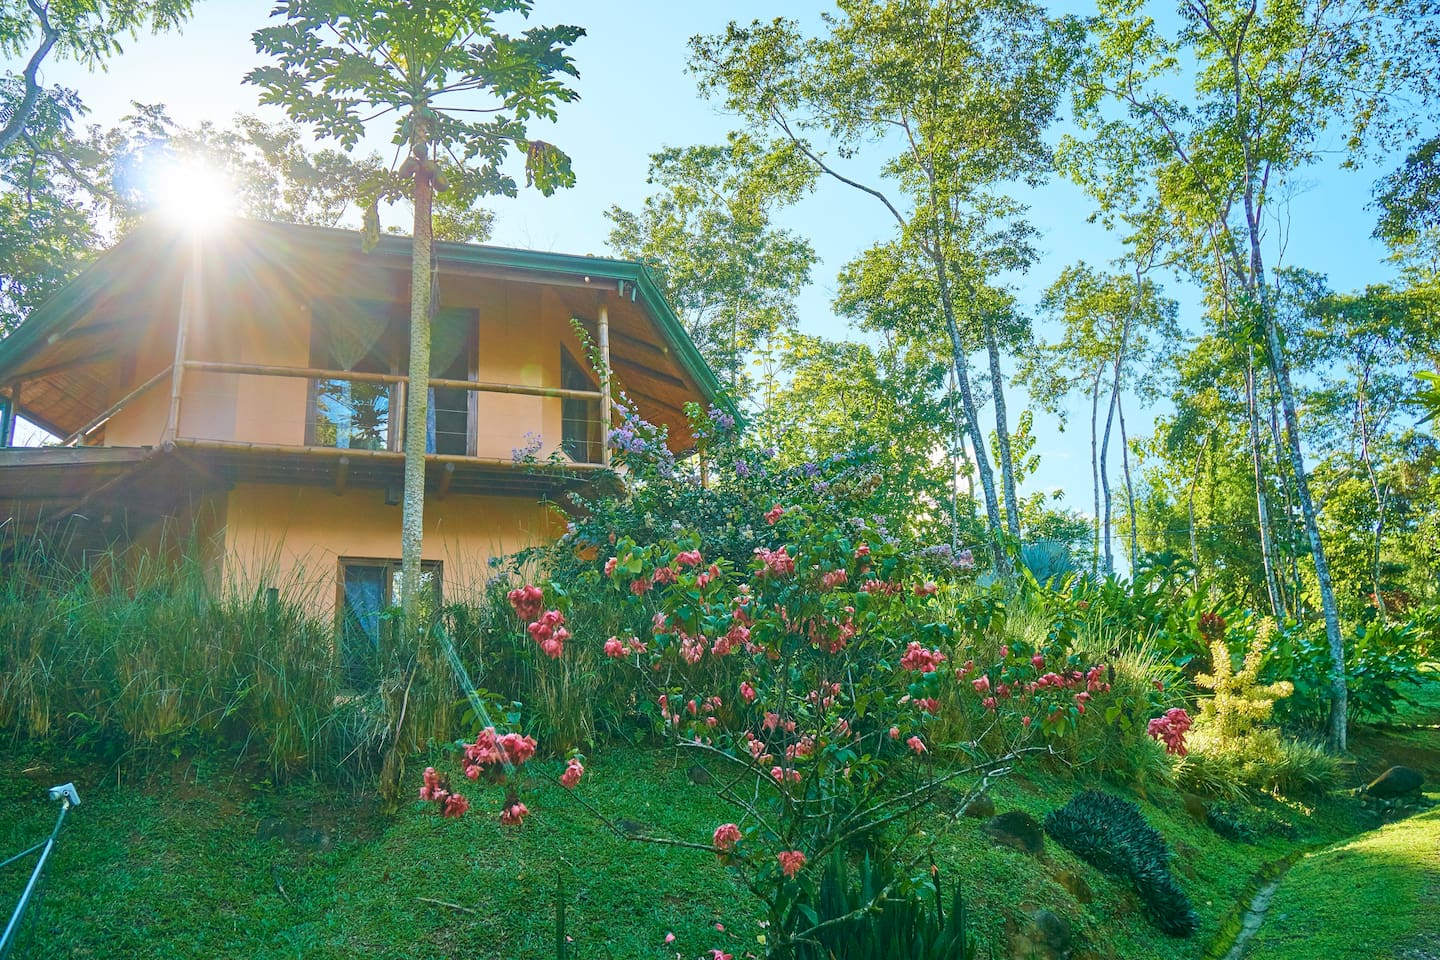 Perched on the hilltop overlooking the union of the Ballena and Uvita rivers.